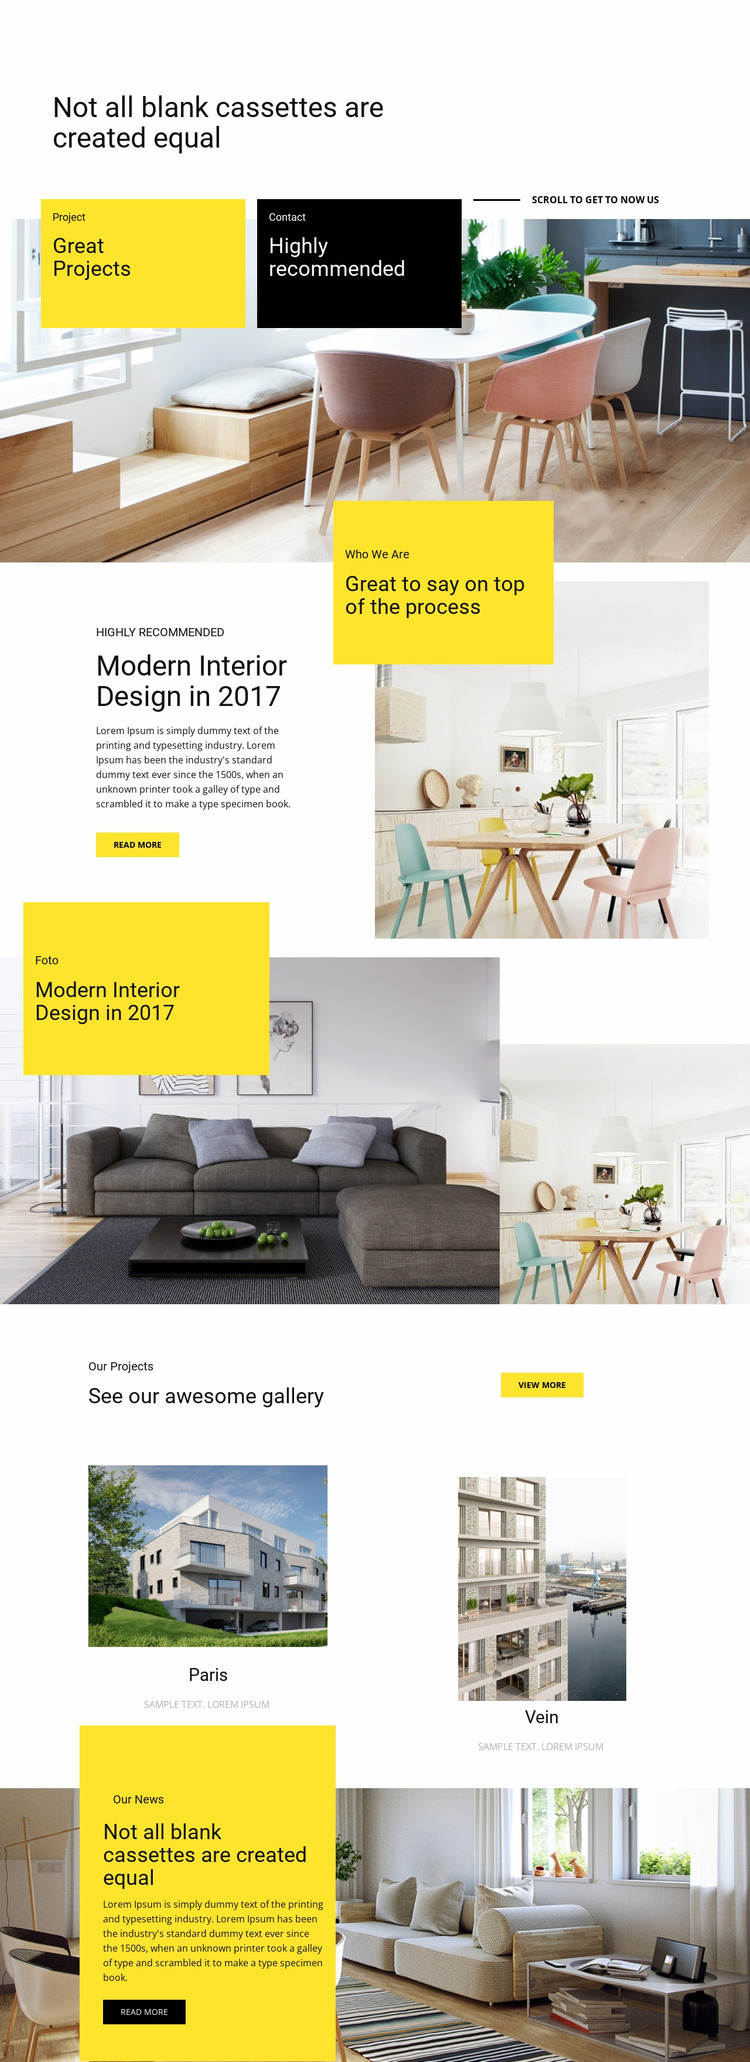 Great projects, high quality Html Website Builder